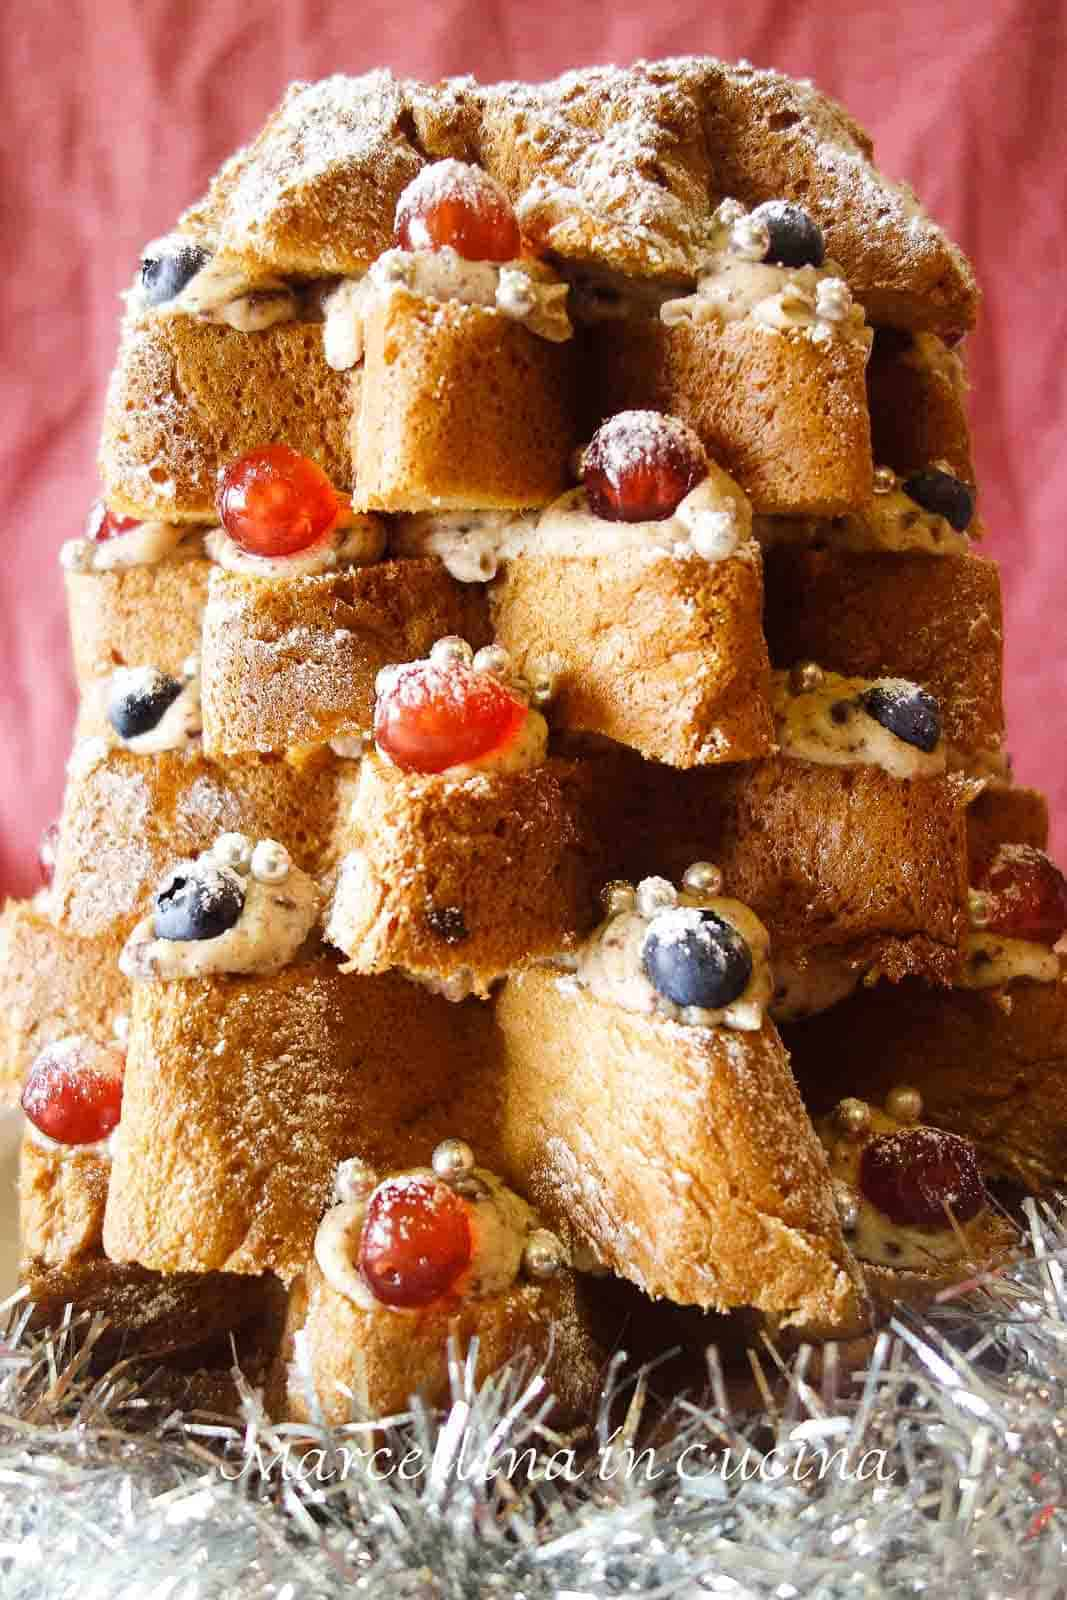 christmas tree cake with layers of cream filling, decorated with cherries and chocolate